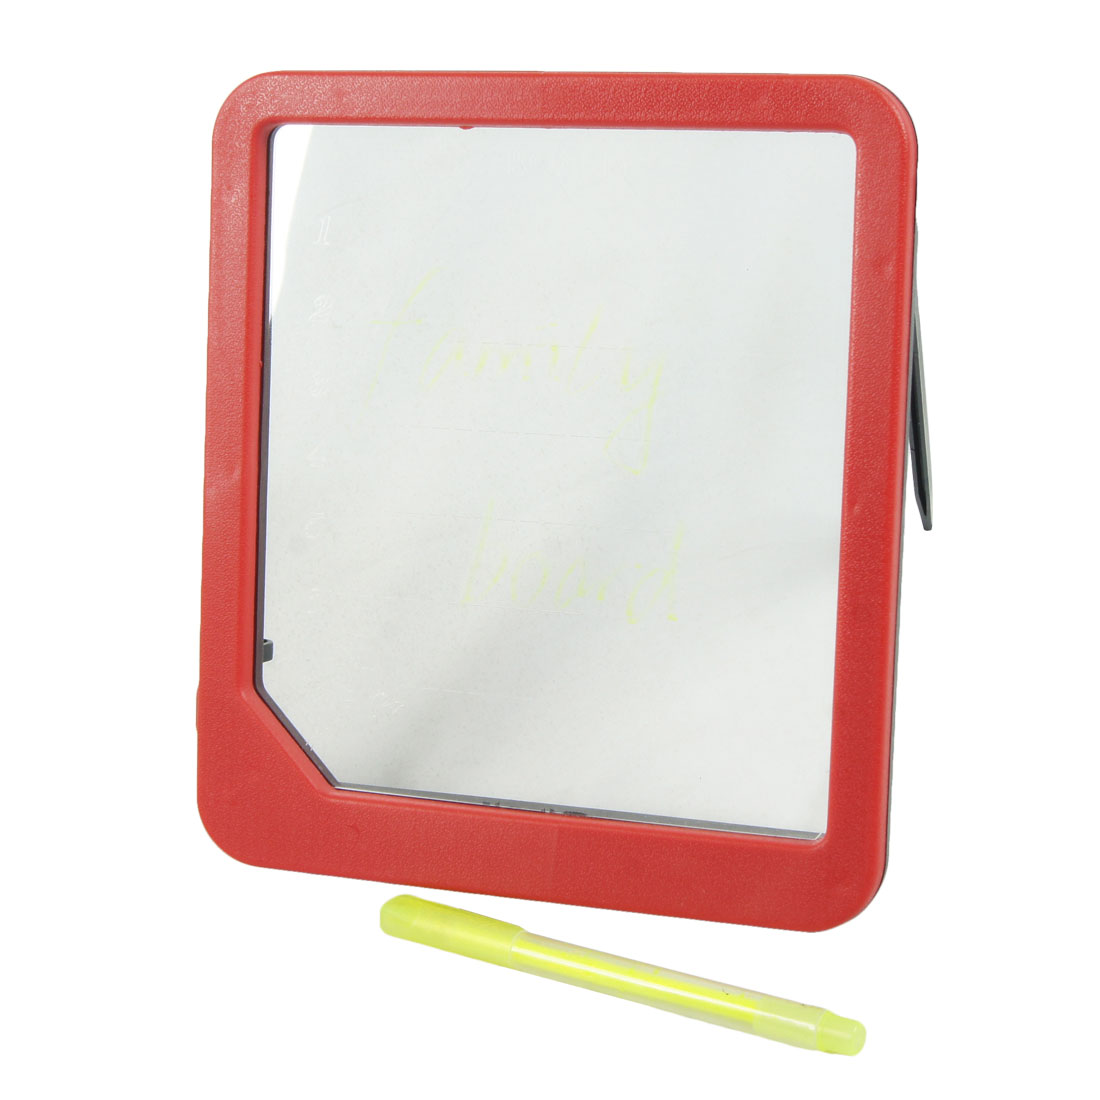 Red Frame Blue Light LED Message Text Glowing Board w Yellow Marking Pen